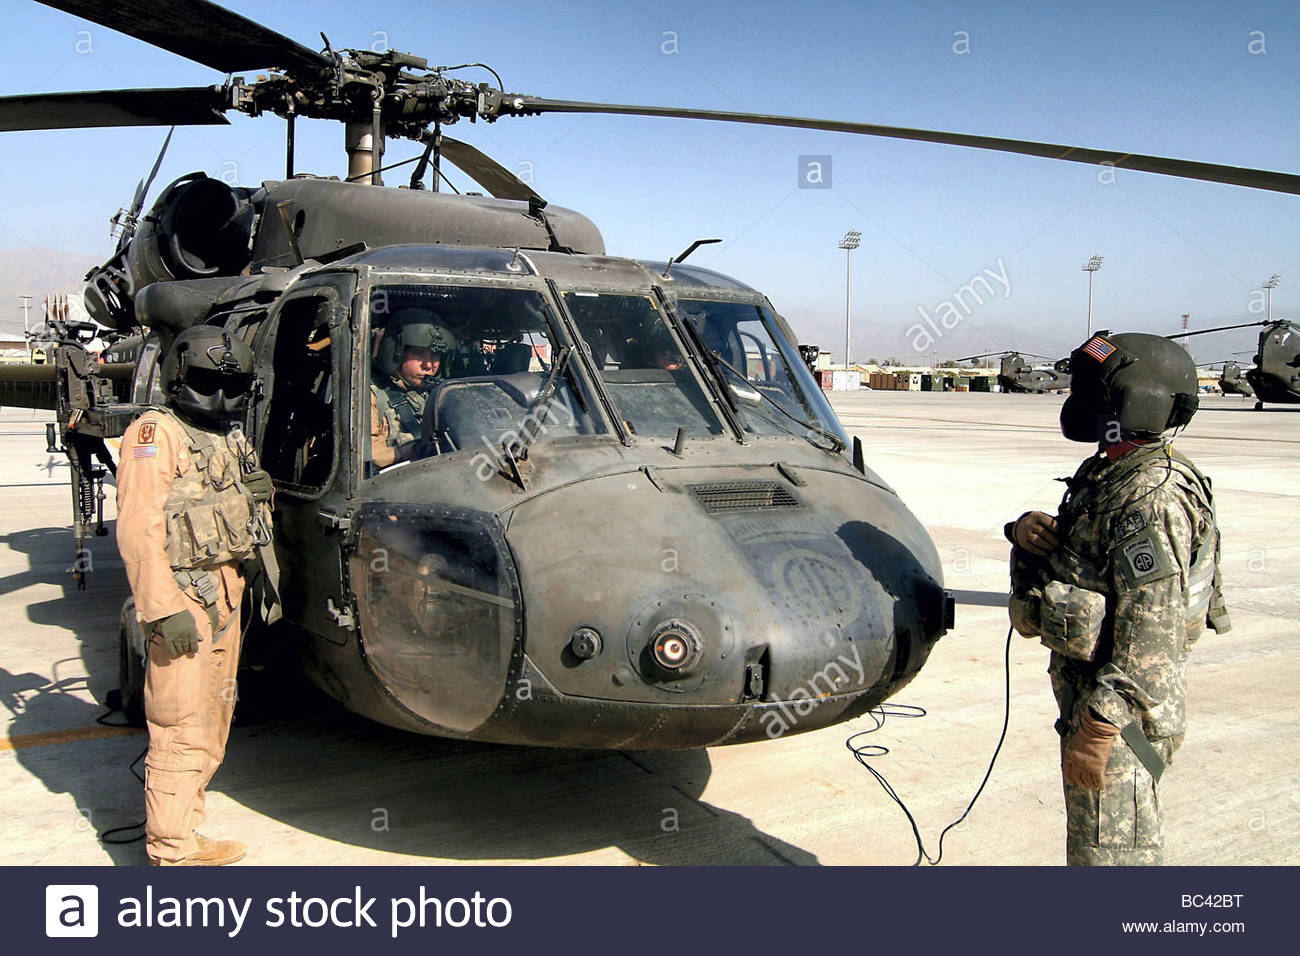 vario helicopters with Stock Photo Us Army In Afghanistan Isaf Nato Bagram Airbase 24675948 on Watch as well Page 8 as well Watch as well Stock Photo Us Army In Afghanistan Isaf Nato Bagram Airbase 24675948 besides 5.